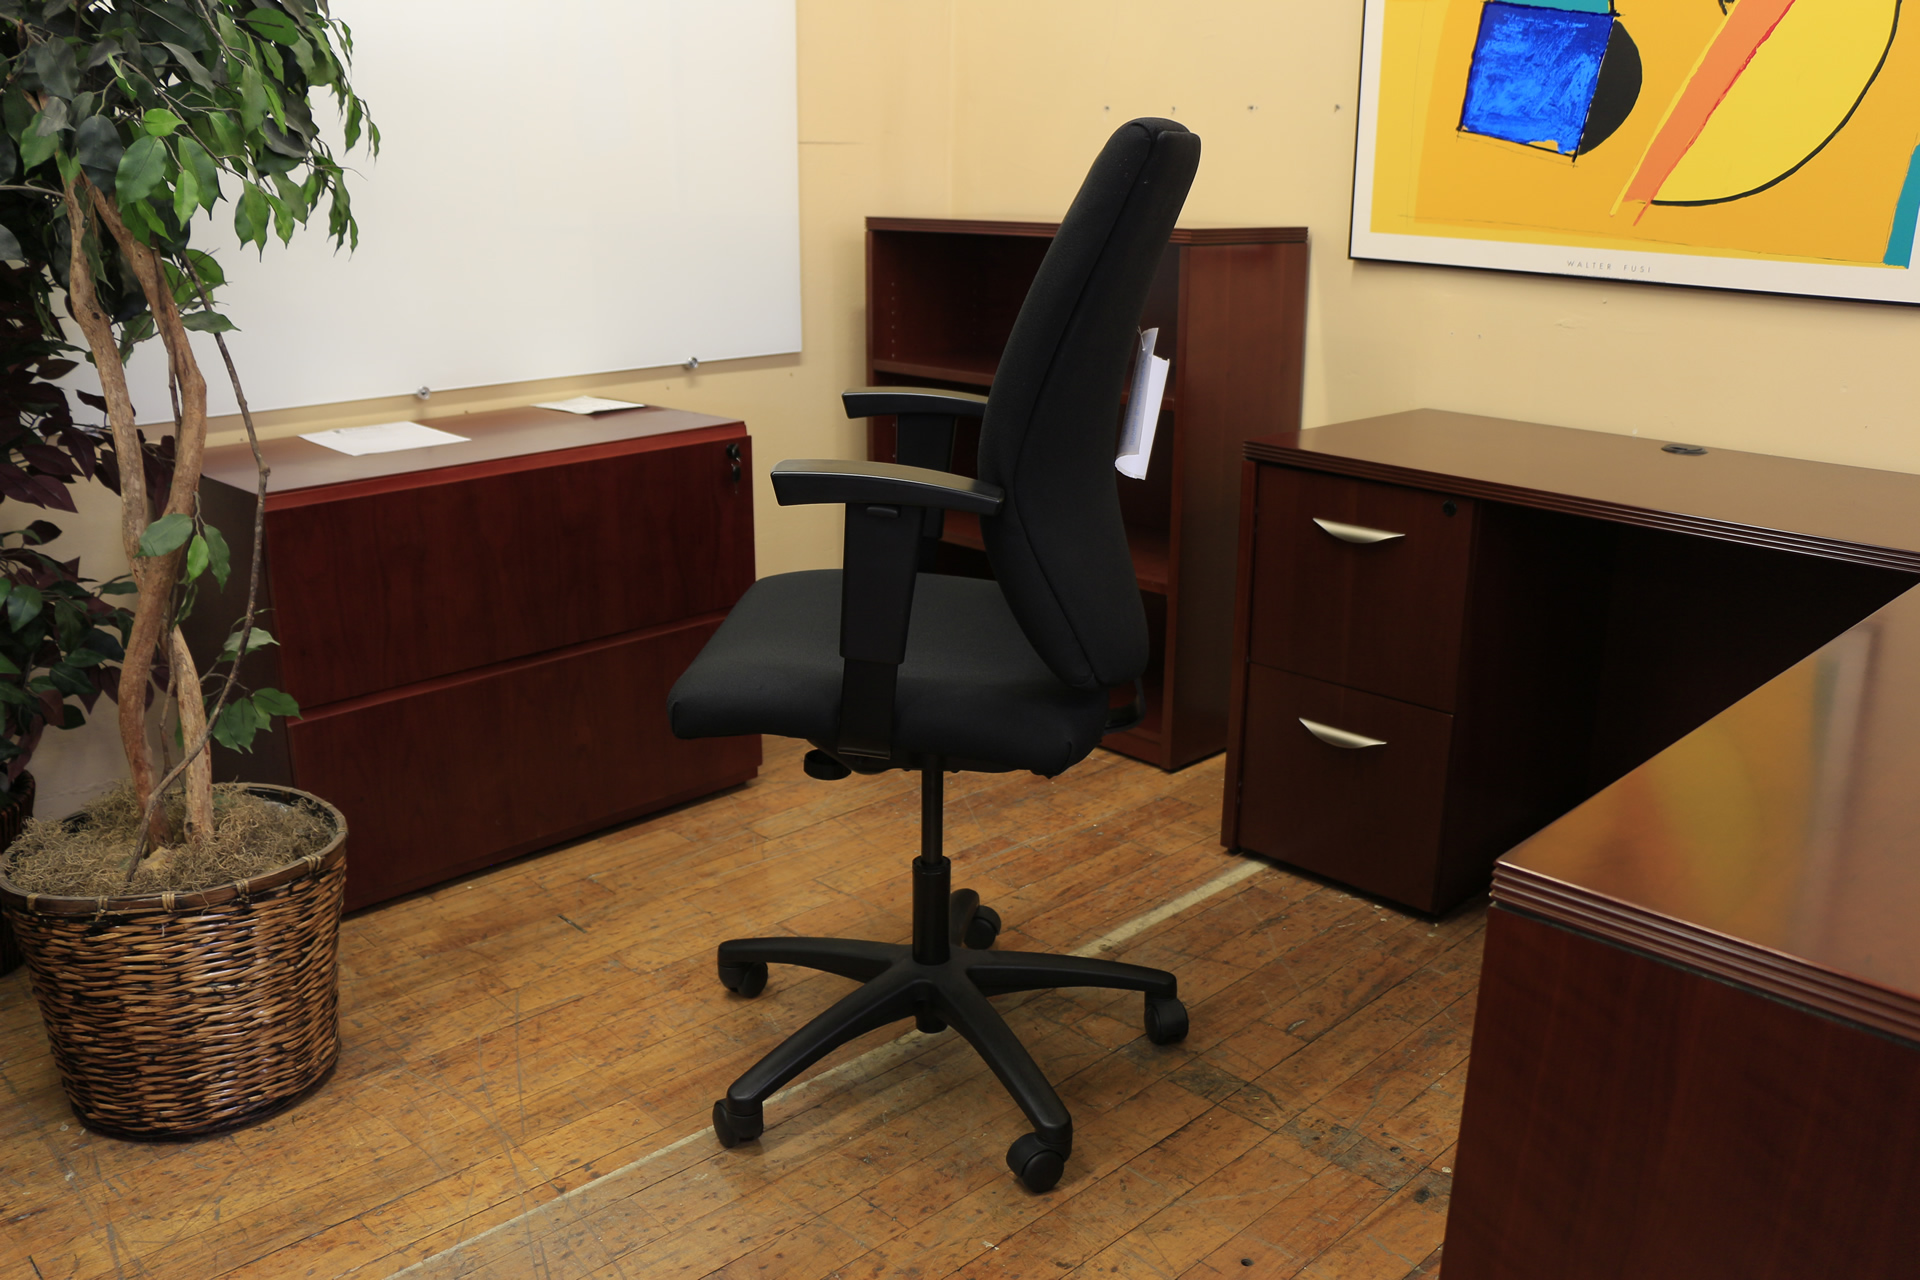 peartreeofficefurniture_peartreeofficefurniture_peartreeofficefurniture_2015-06-02_20-05-55.jpg